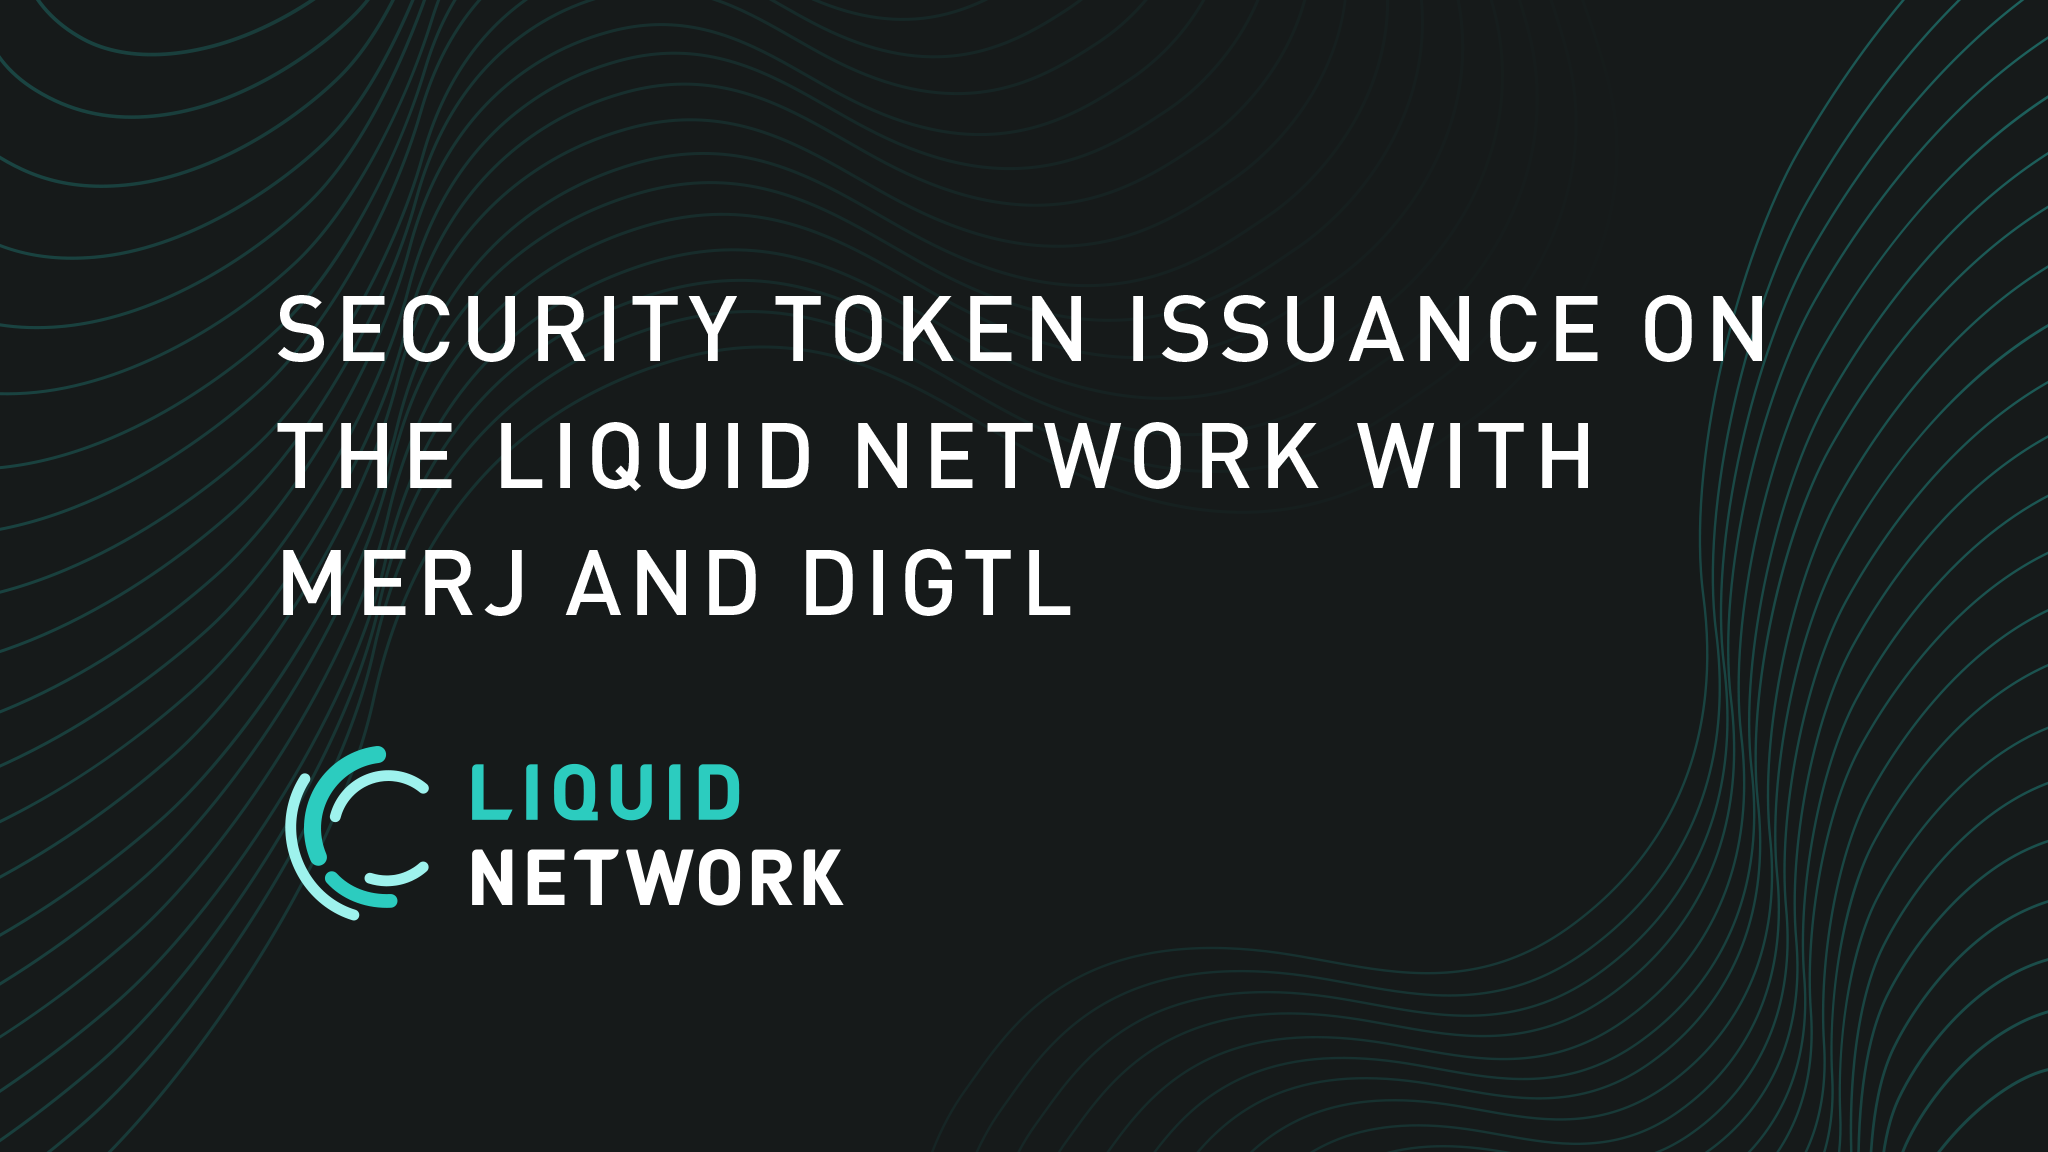 National Securities Market Operator MERJ Exchange and Trading Technology Provider DIGTL to Utilize the Liquid Network